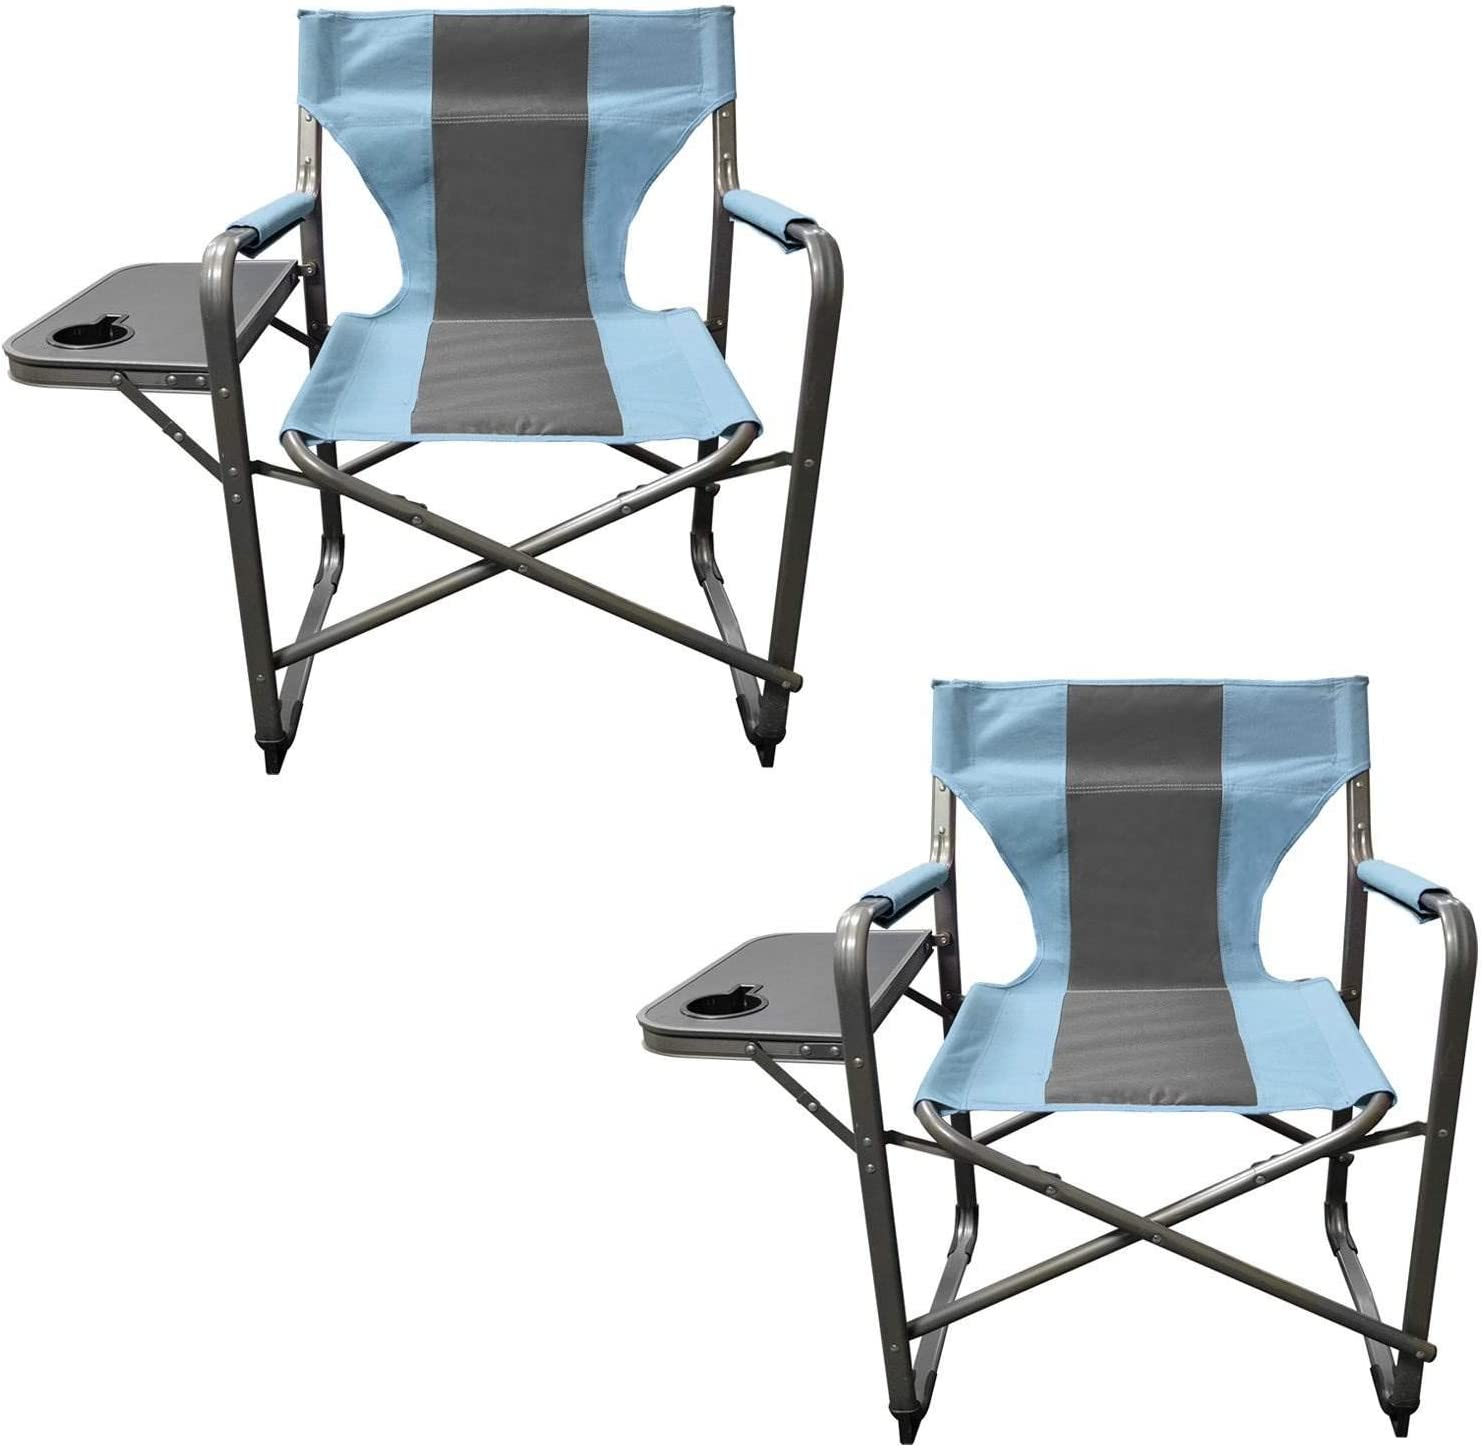 Caravan Sports DFC01022 Teal Gray 2PK Elite Director s Folding Chair